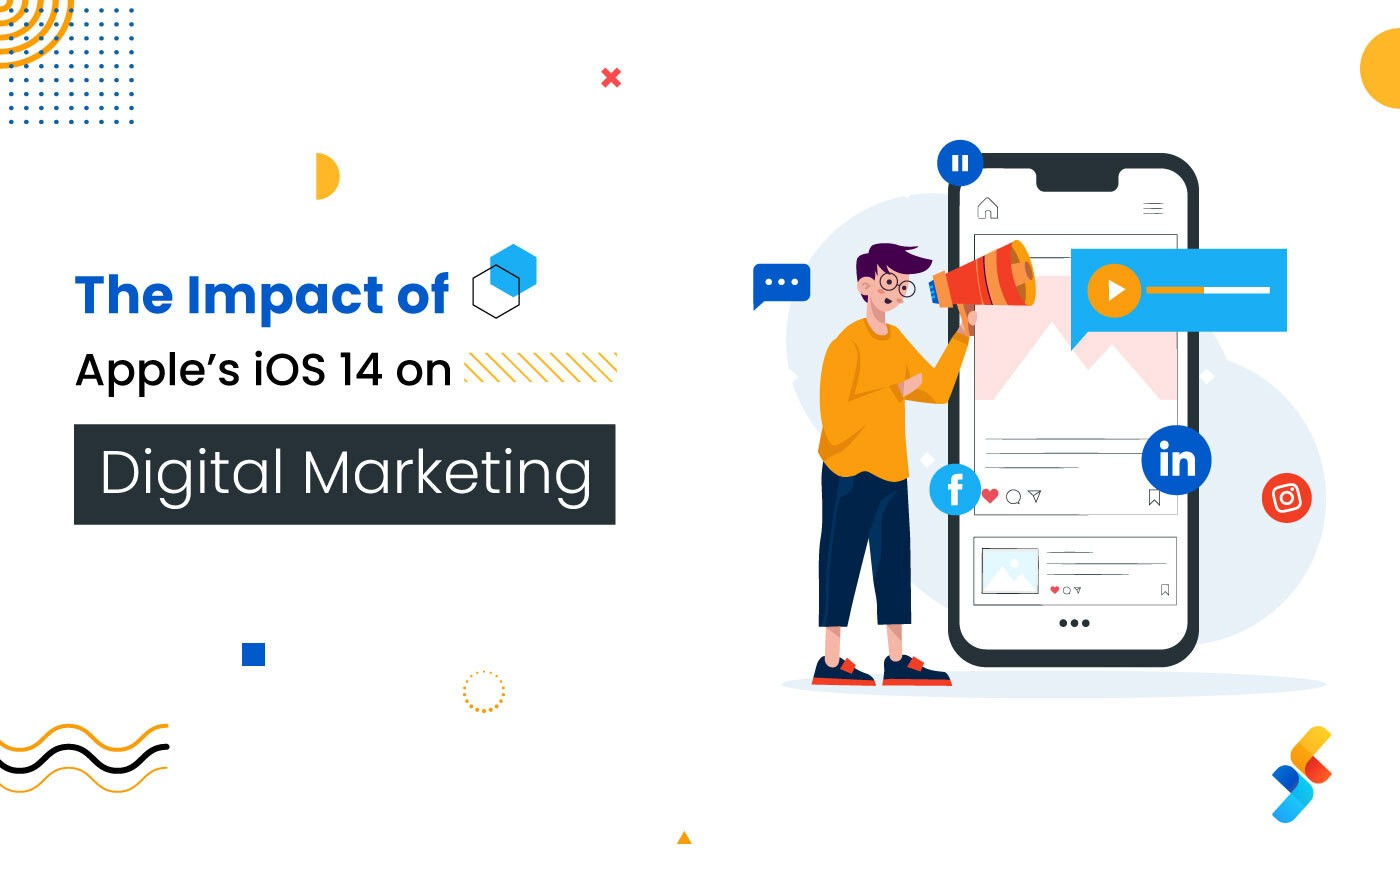 The Impact of Apple's iOS 14 on Digital Marketing